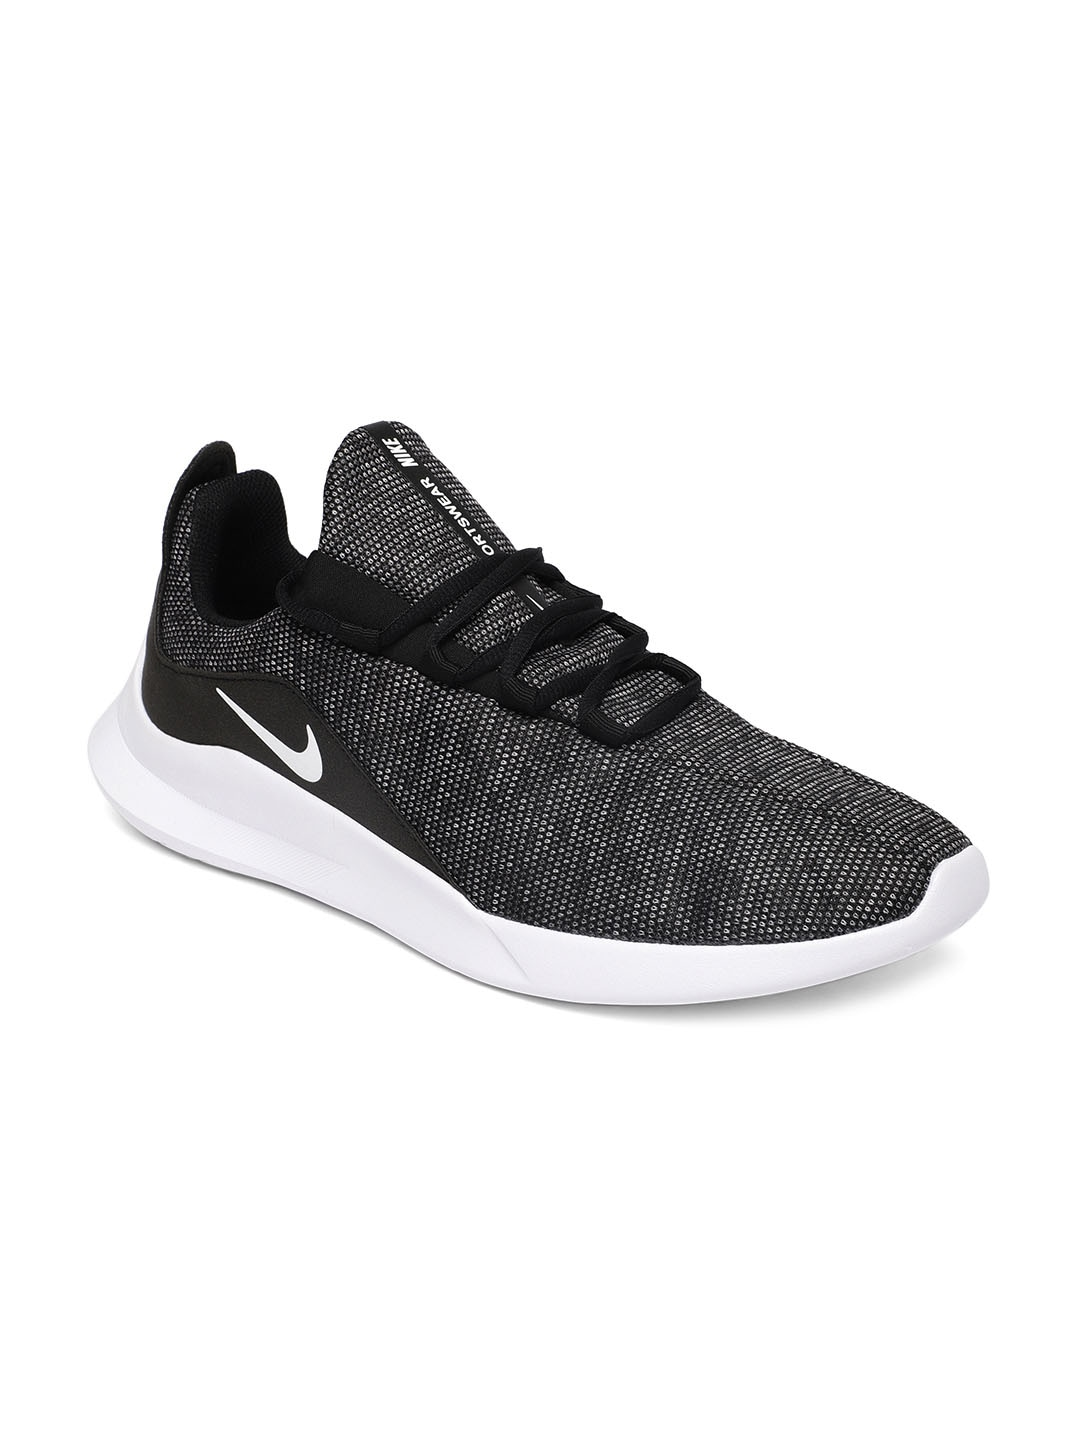 promo code 8a993 42094 Sports Shoes - Buy Sport Shoes For Men   Women Online   Myntra